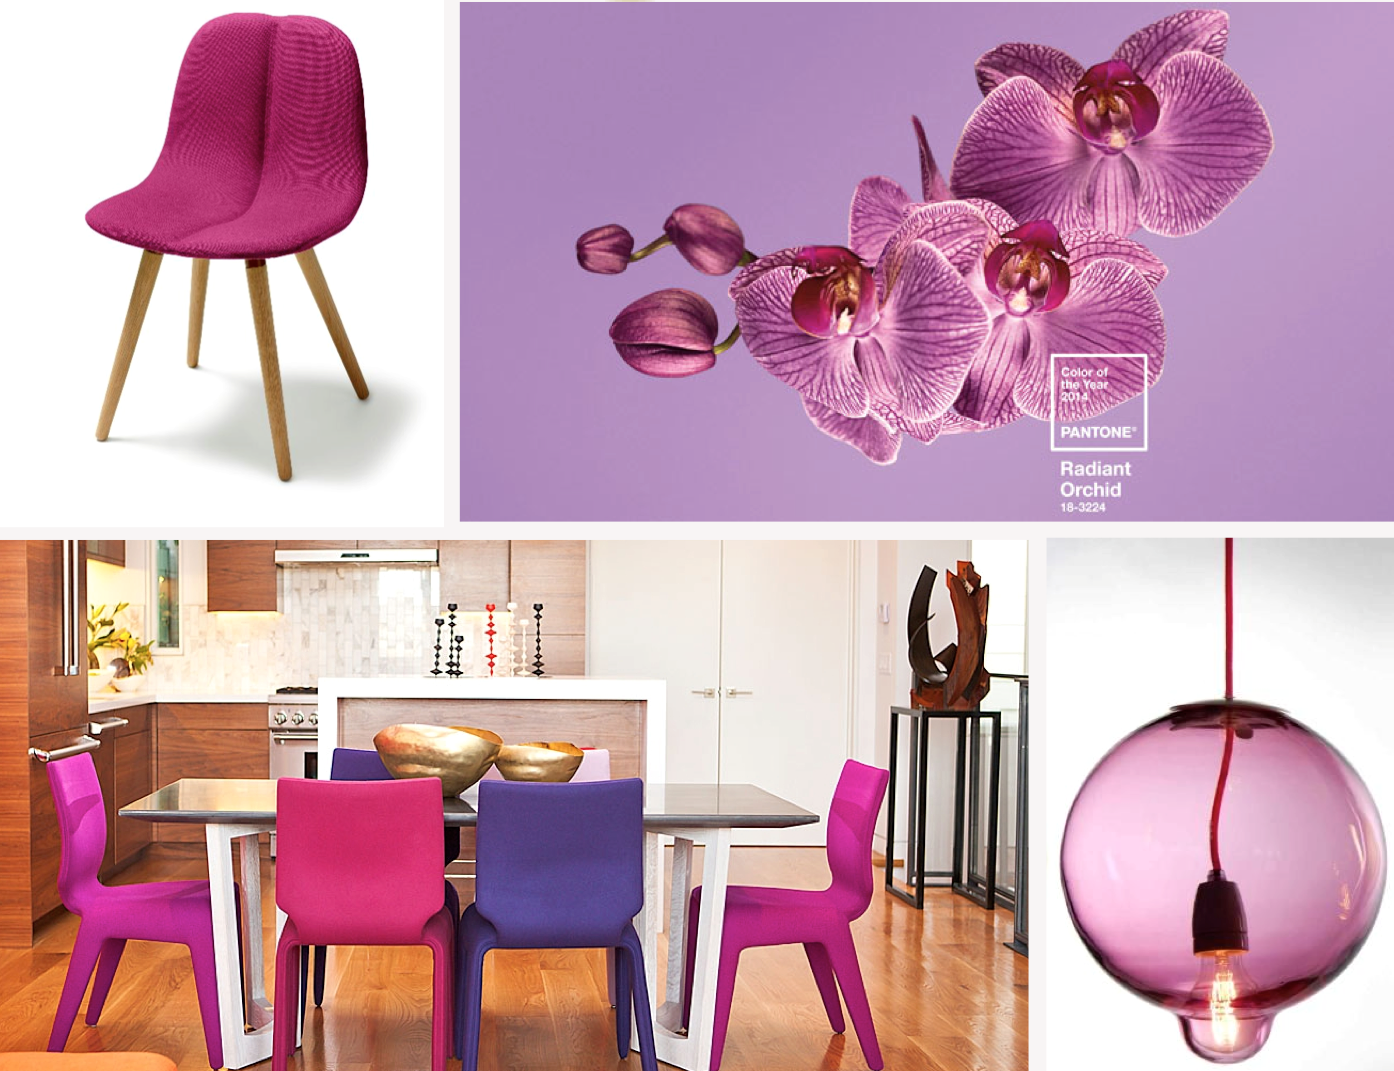 Chabada chairs by Roche Bobois in three vivid and playful vibrant tones, we balanced it with the stunning and neutral dining table by Wüd. With a nod to our design, the 'CHAIR DUO WOOD' by Patrick Norguet and Melt down lamps by Johan Lindsten